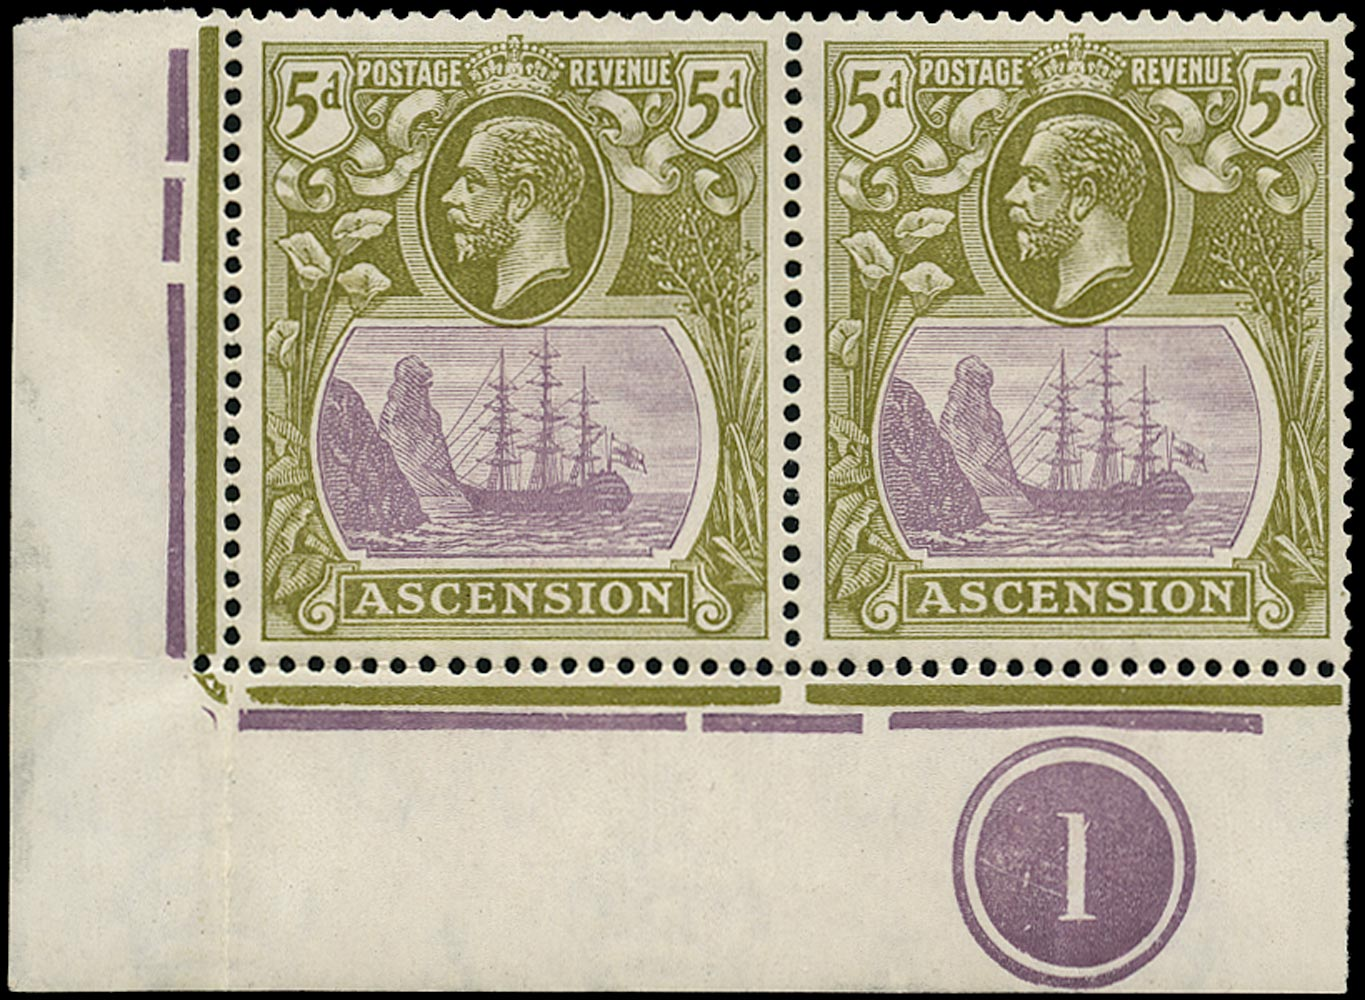 ASCENSION 1924  SG15da Mint 5d purple and olive-green variety Cleft Rock